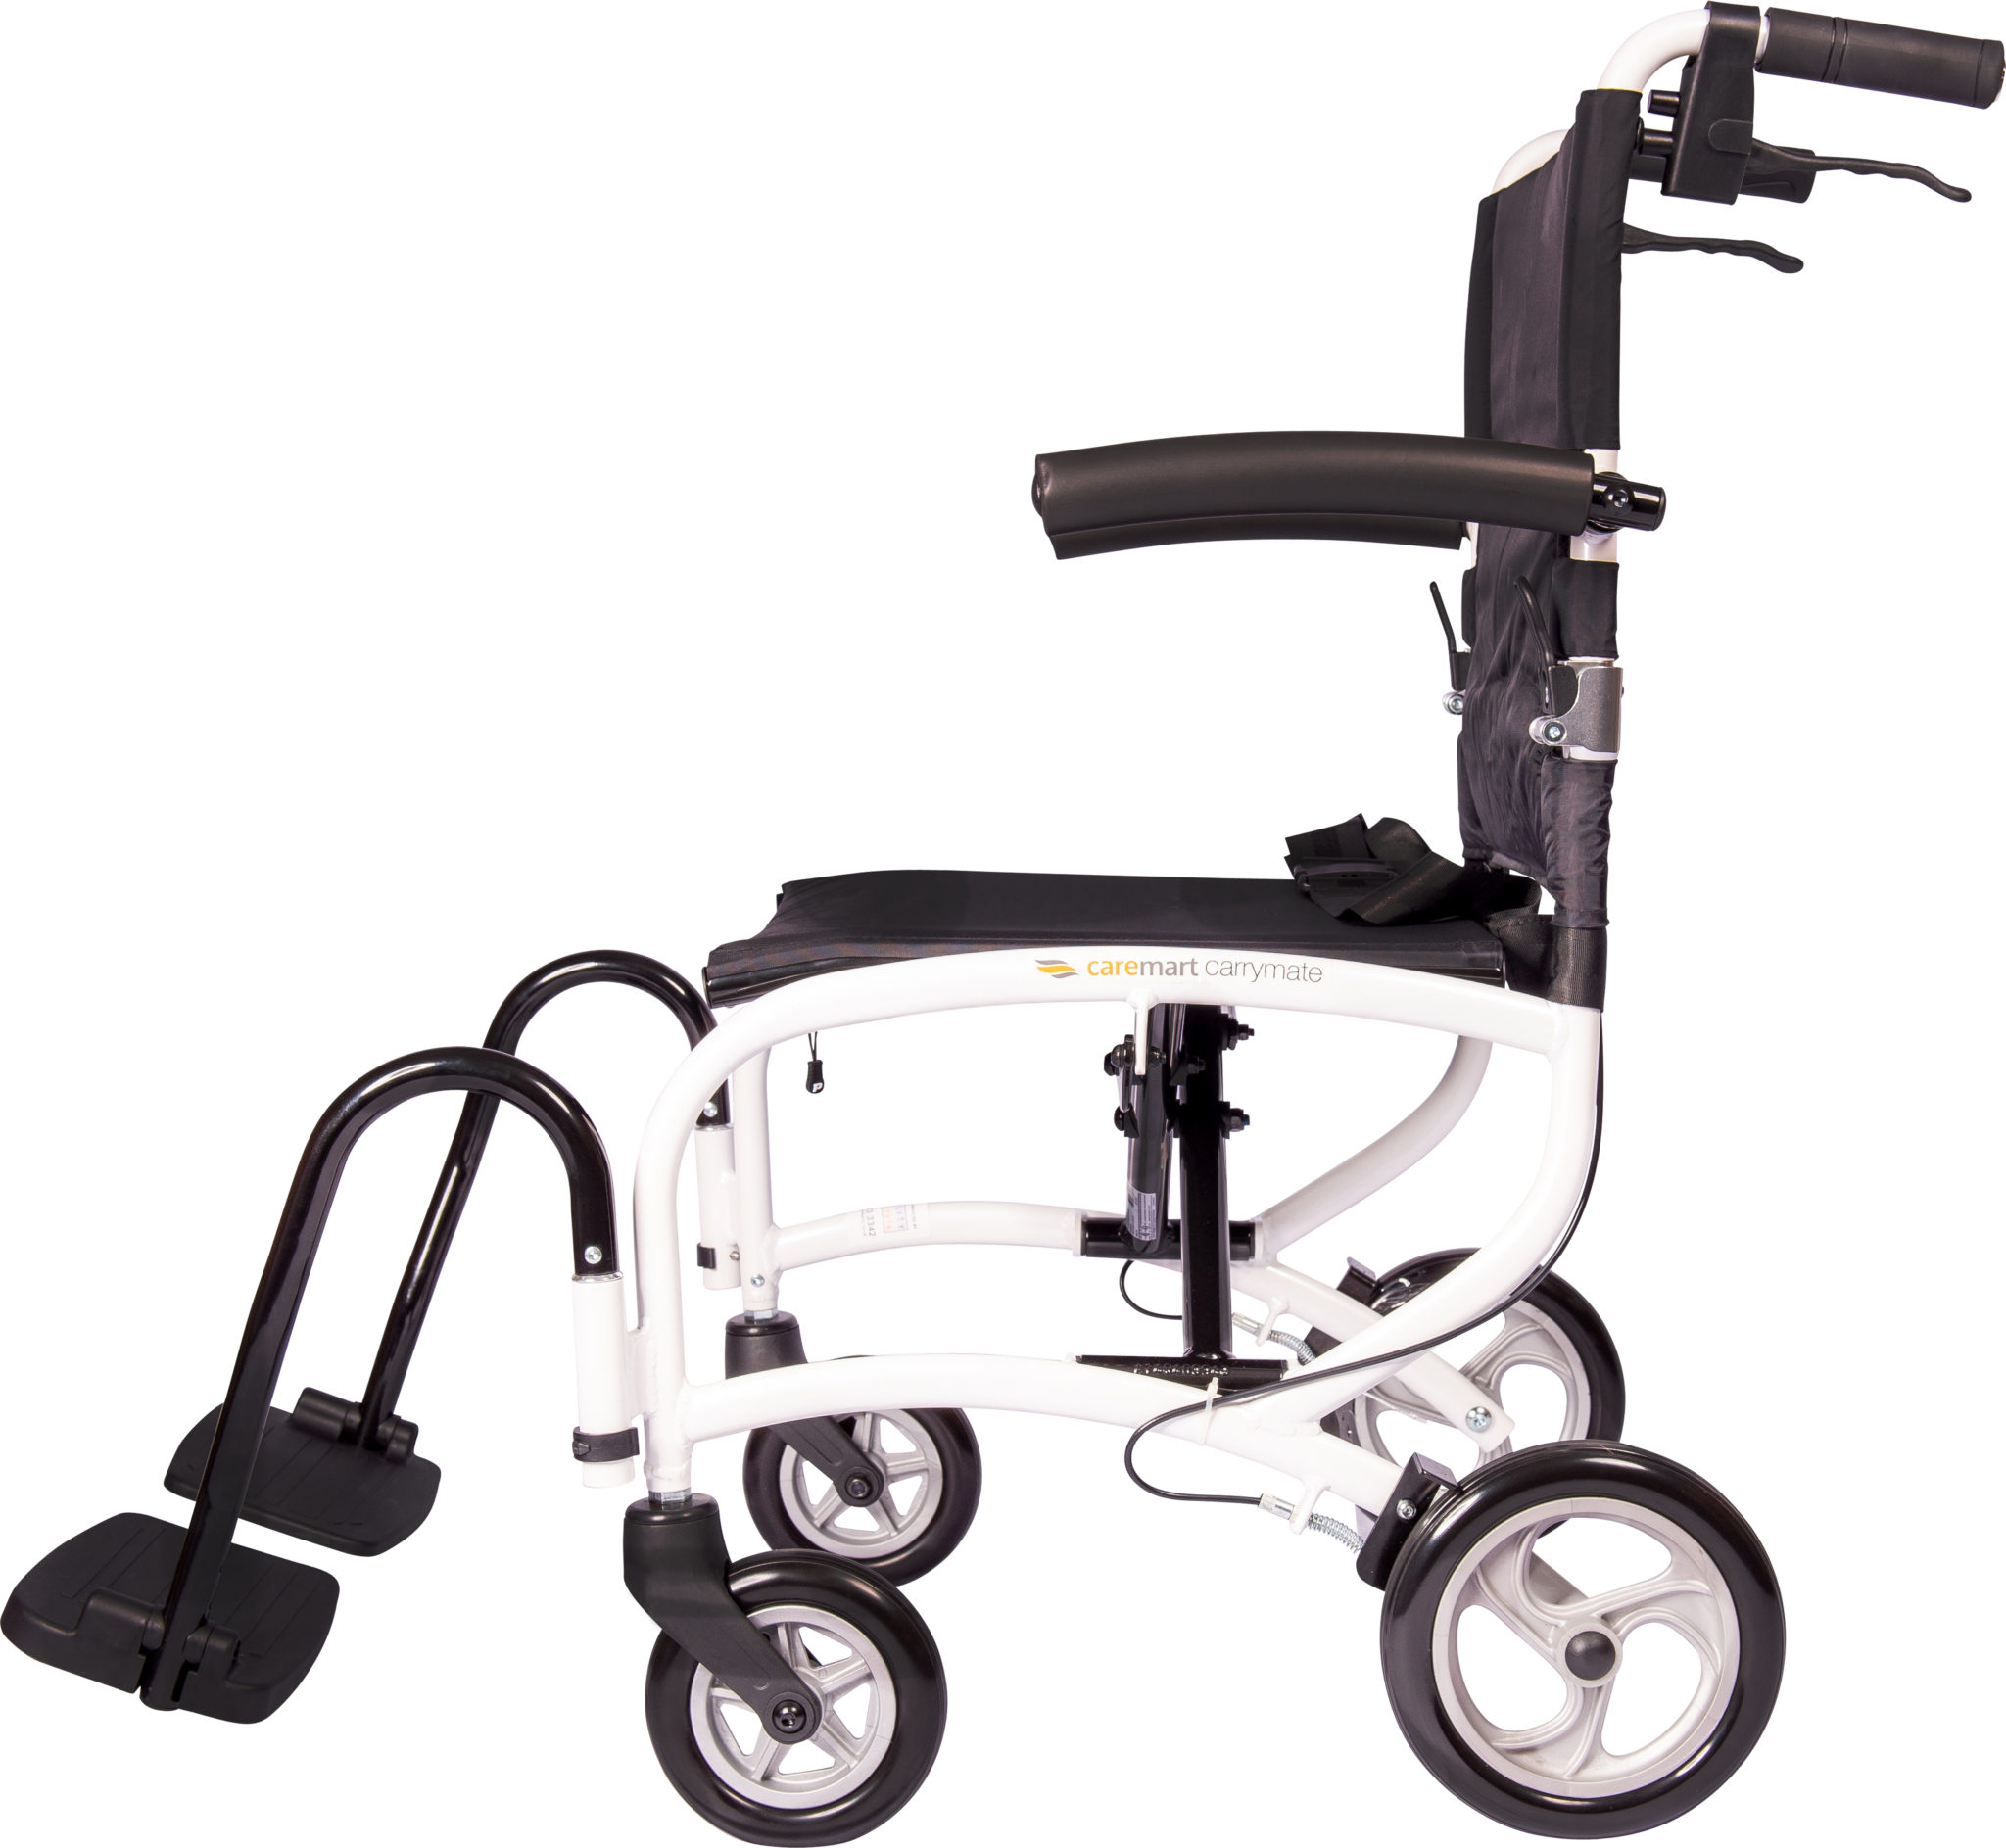 transit-wheelchair-lightweight-foldable-attendant-carry-mate-caremate-black-7H-85FA-H1OB-side.jpg